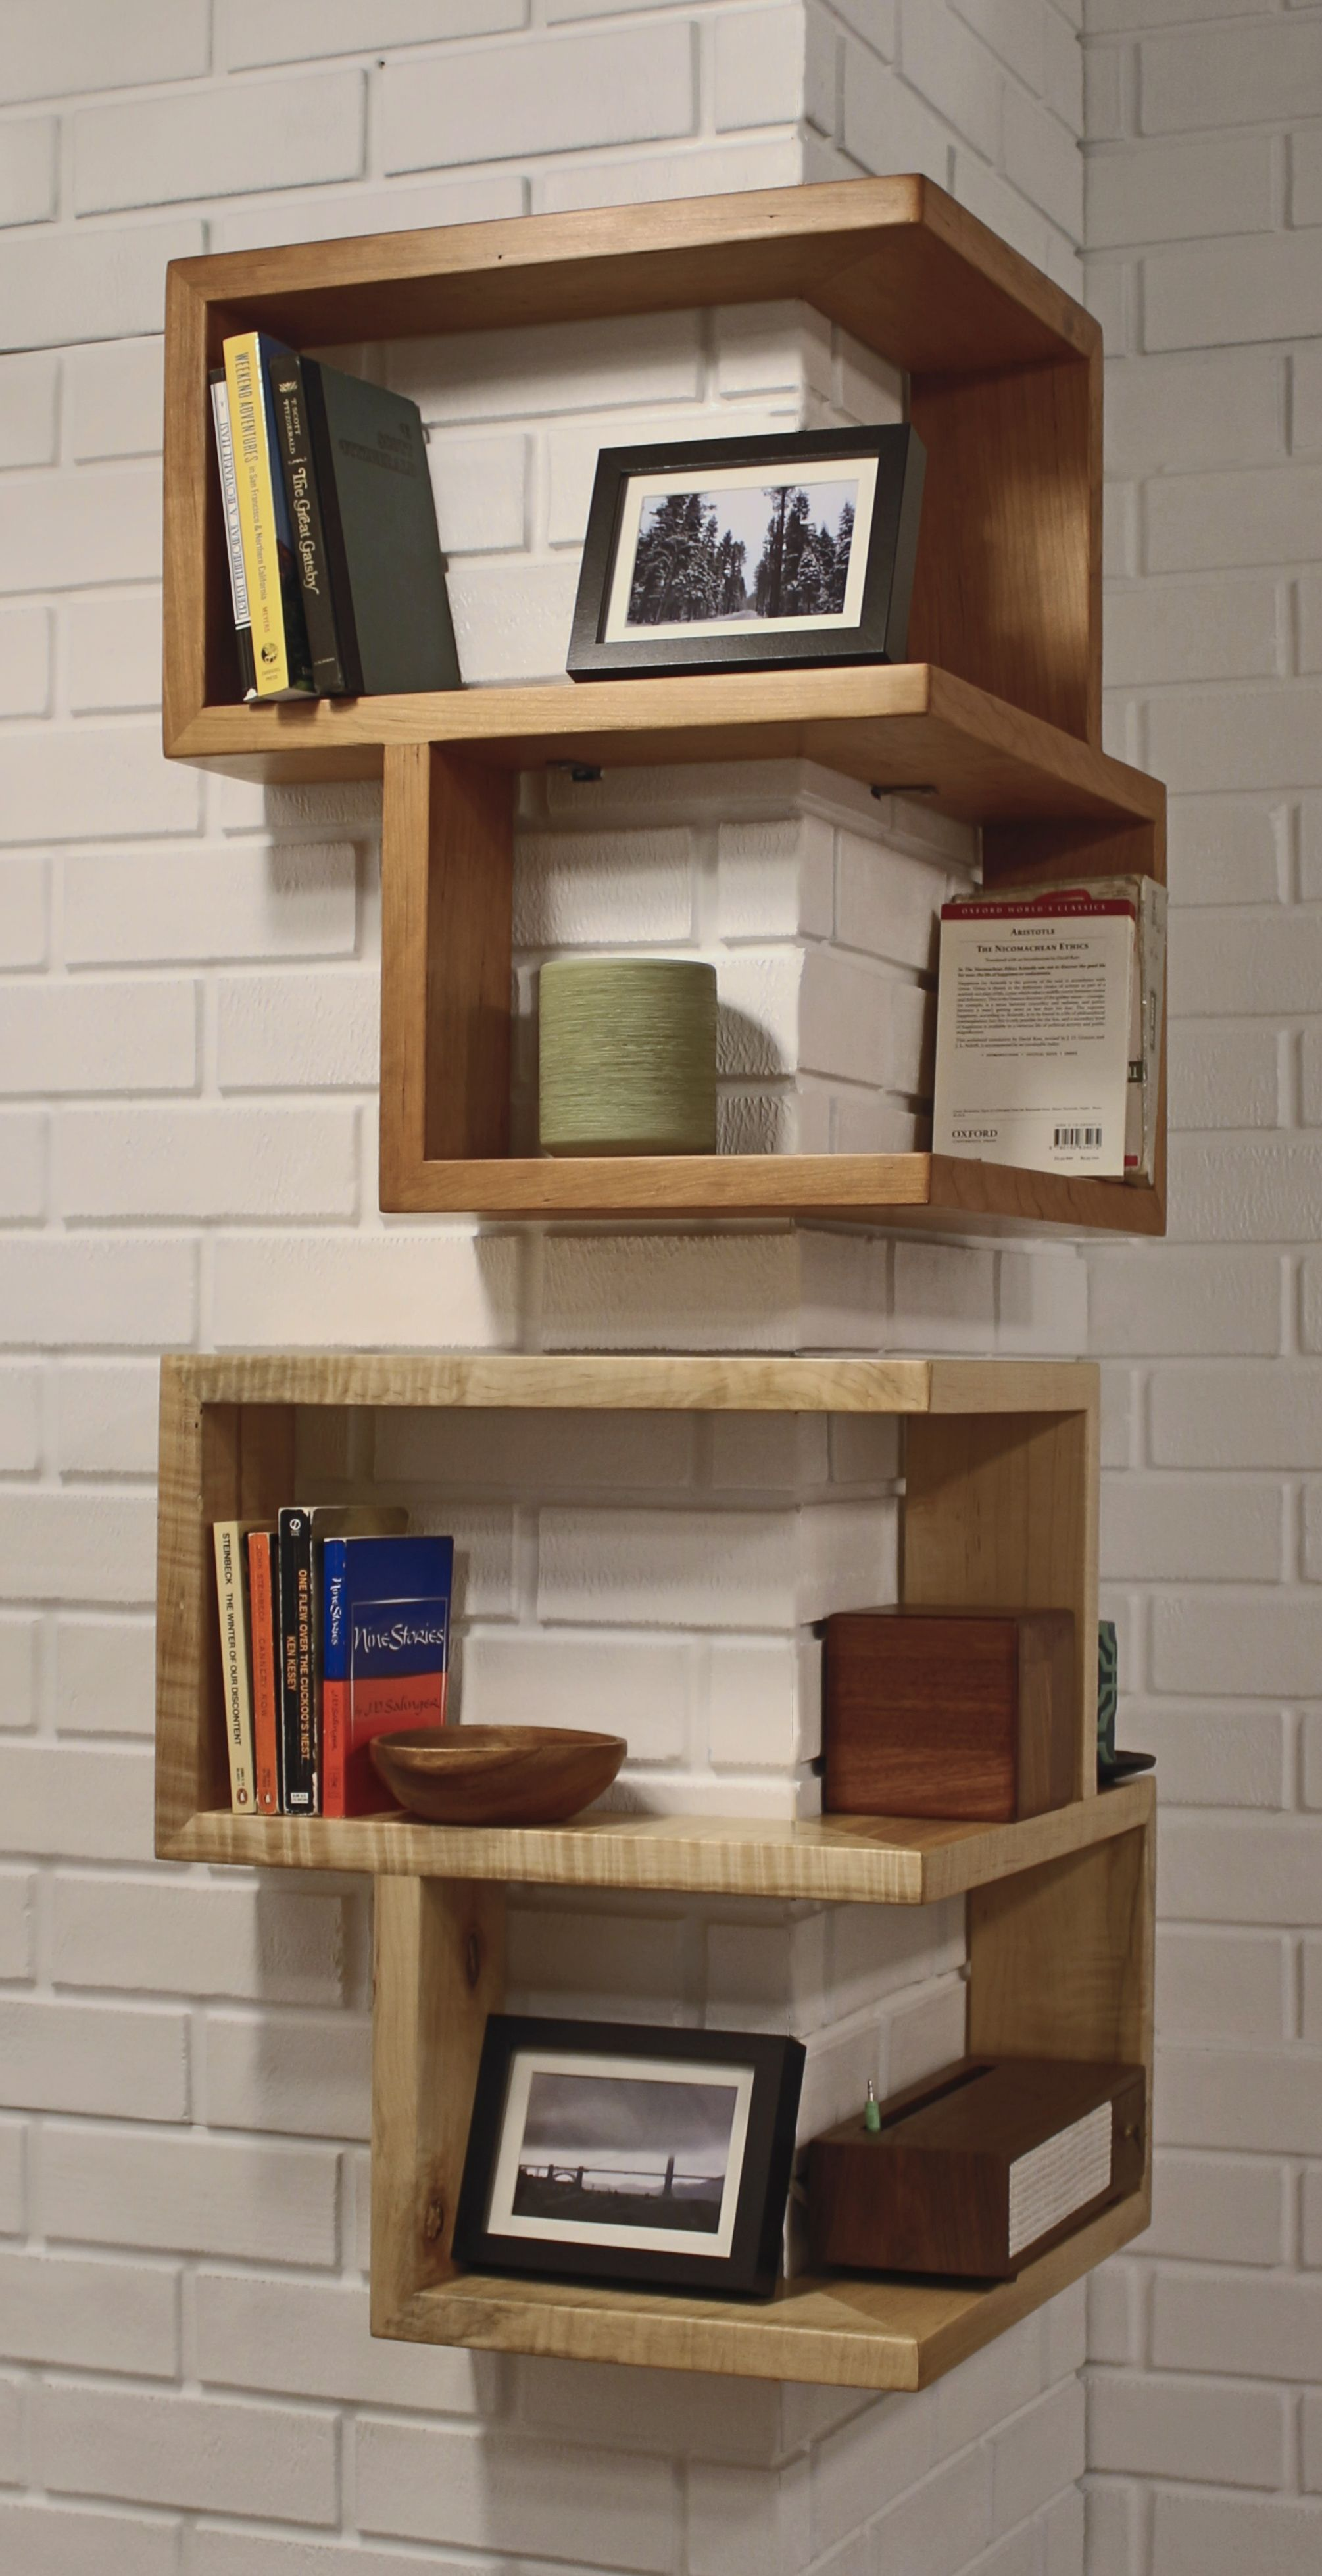 Splendid Shelves Bookshelf Design Wrap Around Shelf Idea Shelf Design Diy Projects To Make Your Home Look Wraps